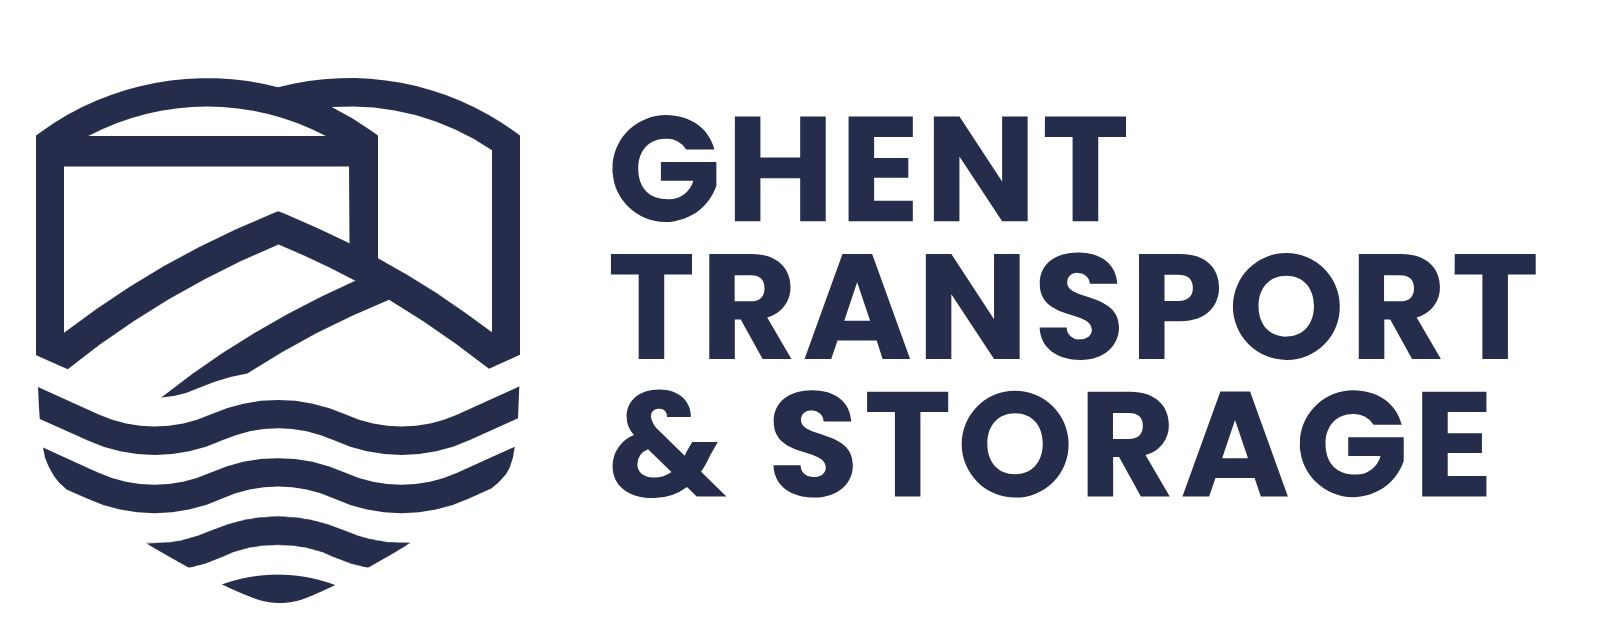 Ghent Transport & Storage NV